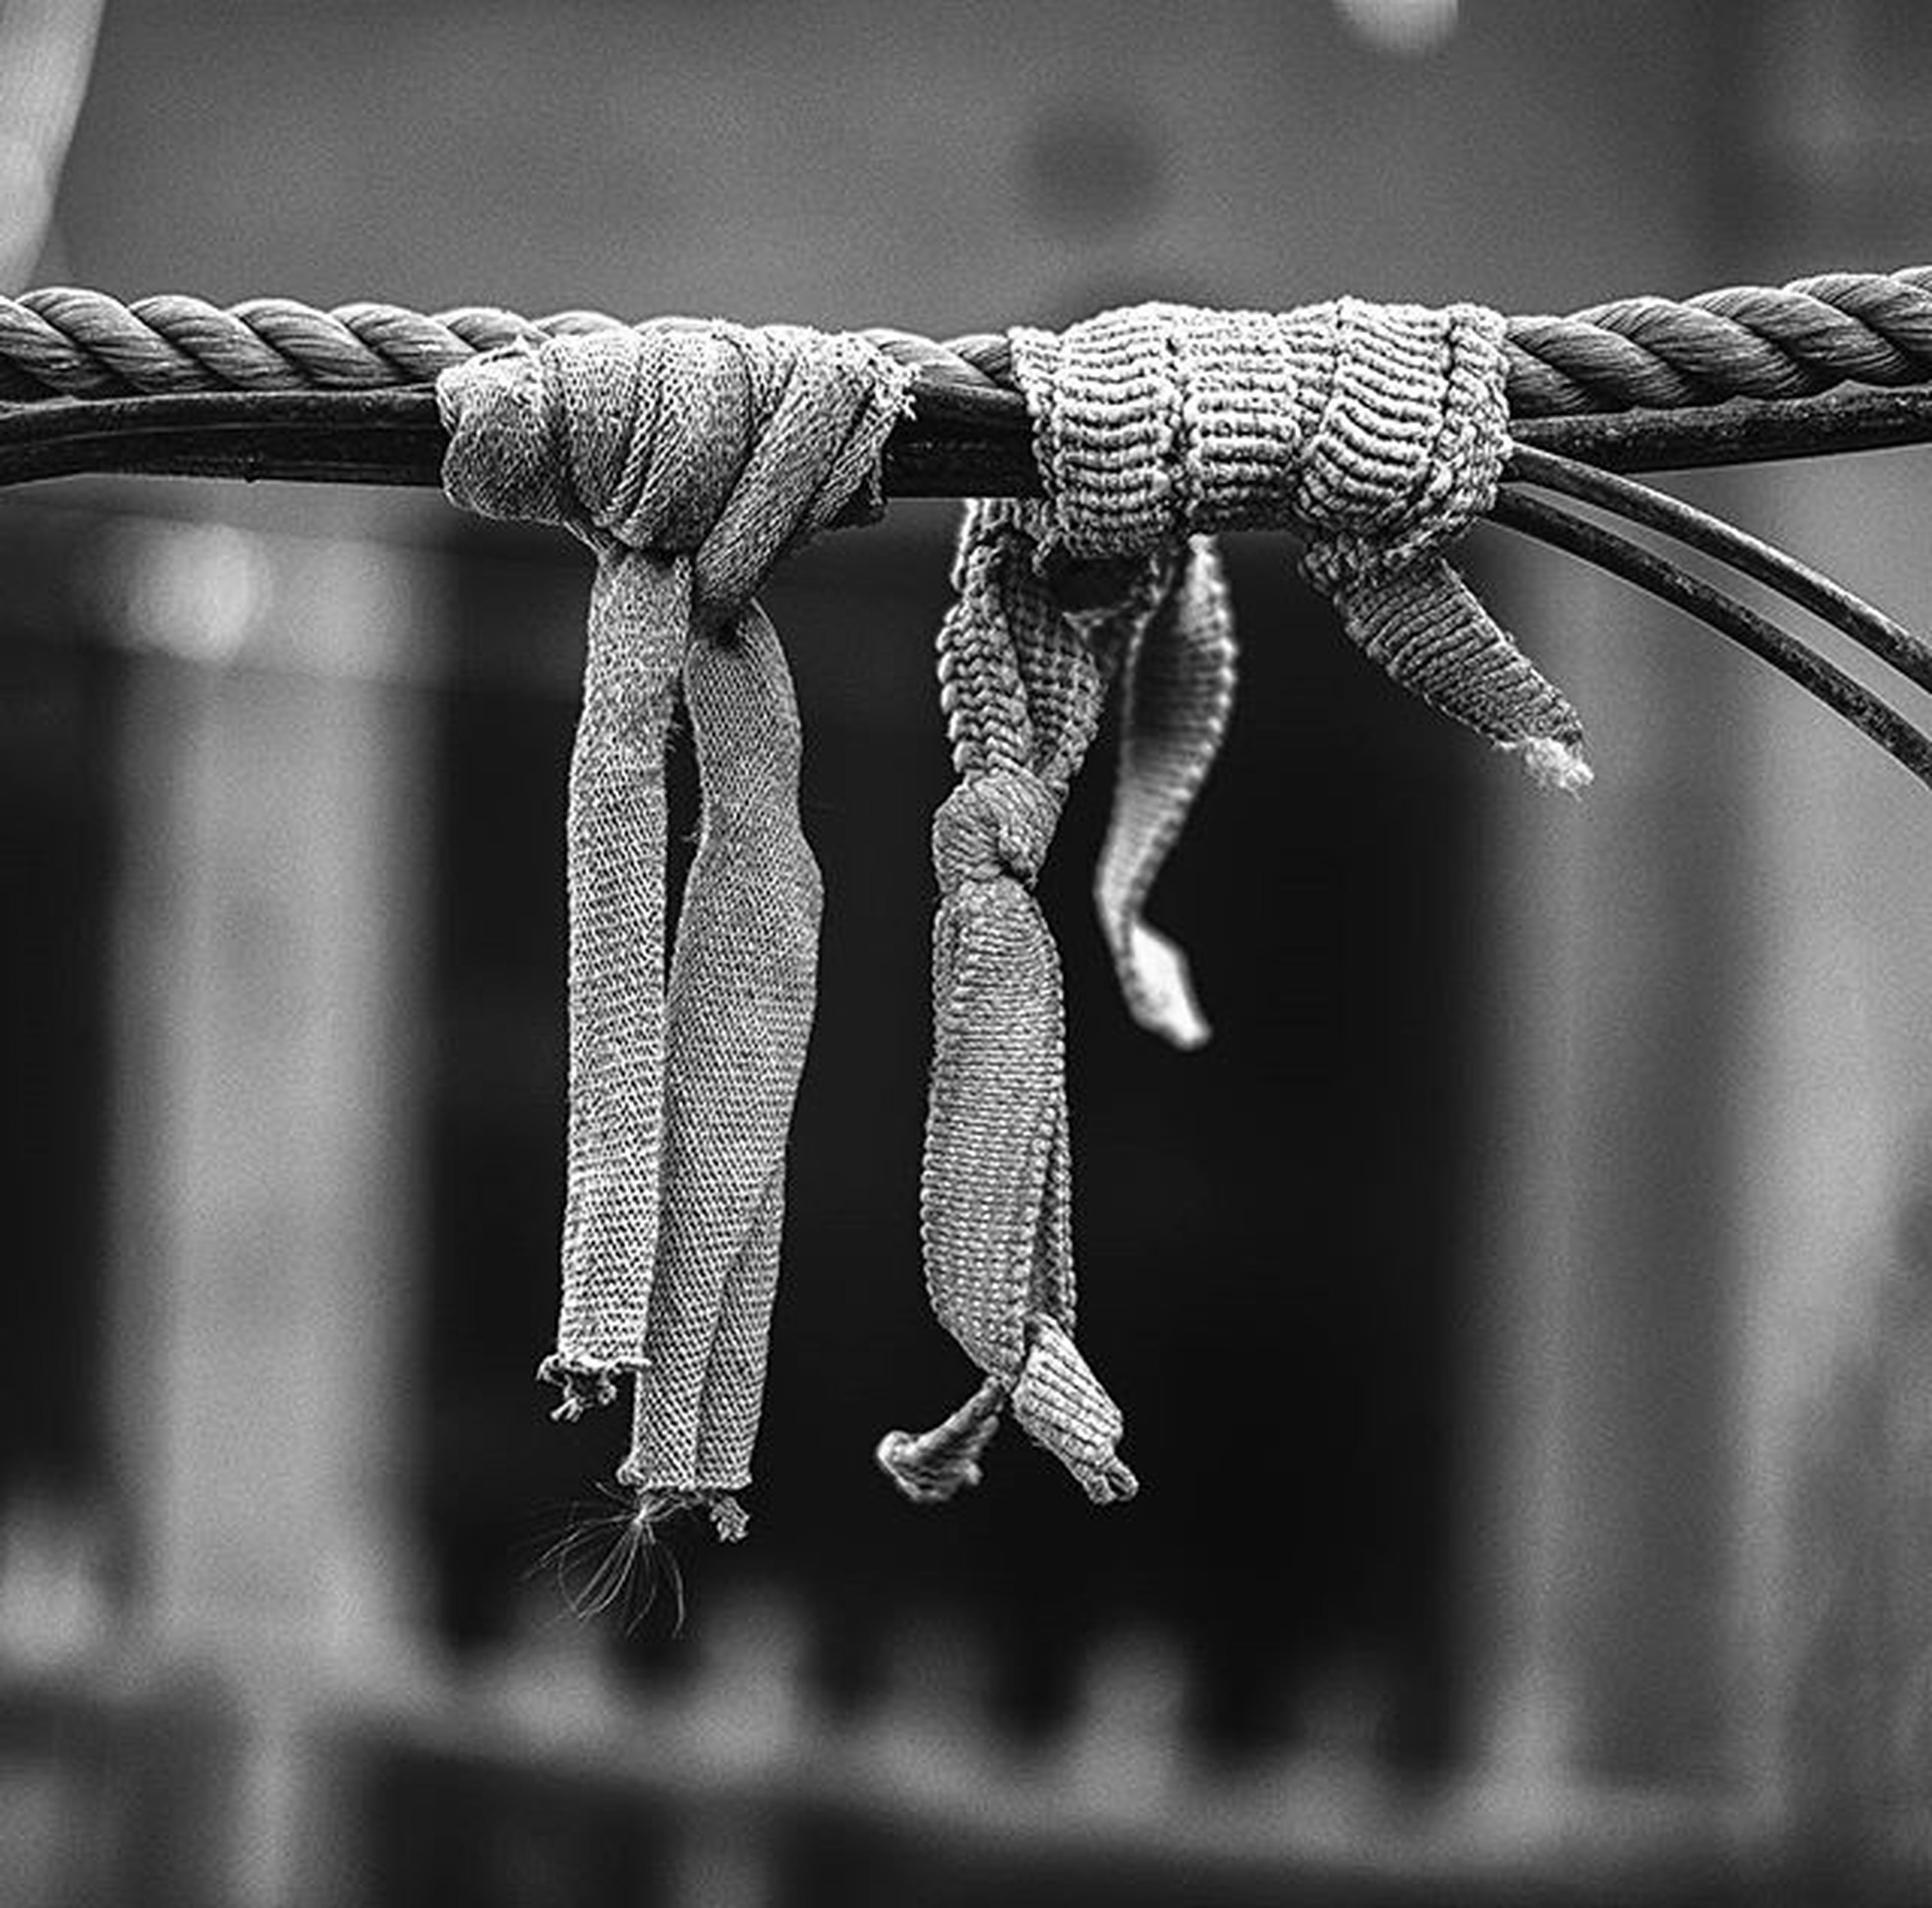 hanging, still life, close-up, indoors, focus on foreground, no people, selective focus, textile, variation, fabric, rope, group of objects, clothing, white color, clothesline, day, string, tied up, large group of objects, table